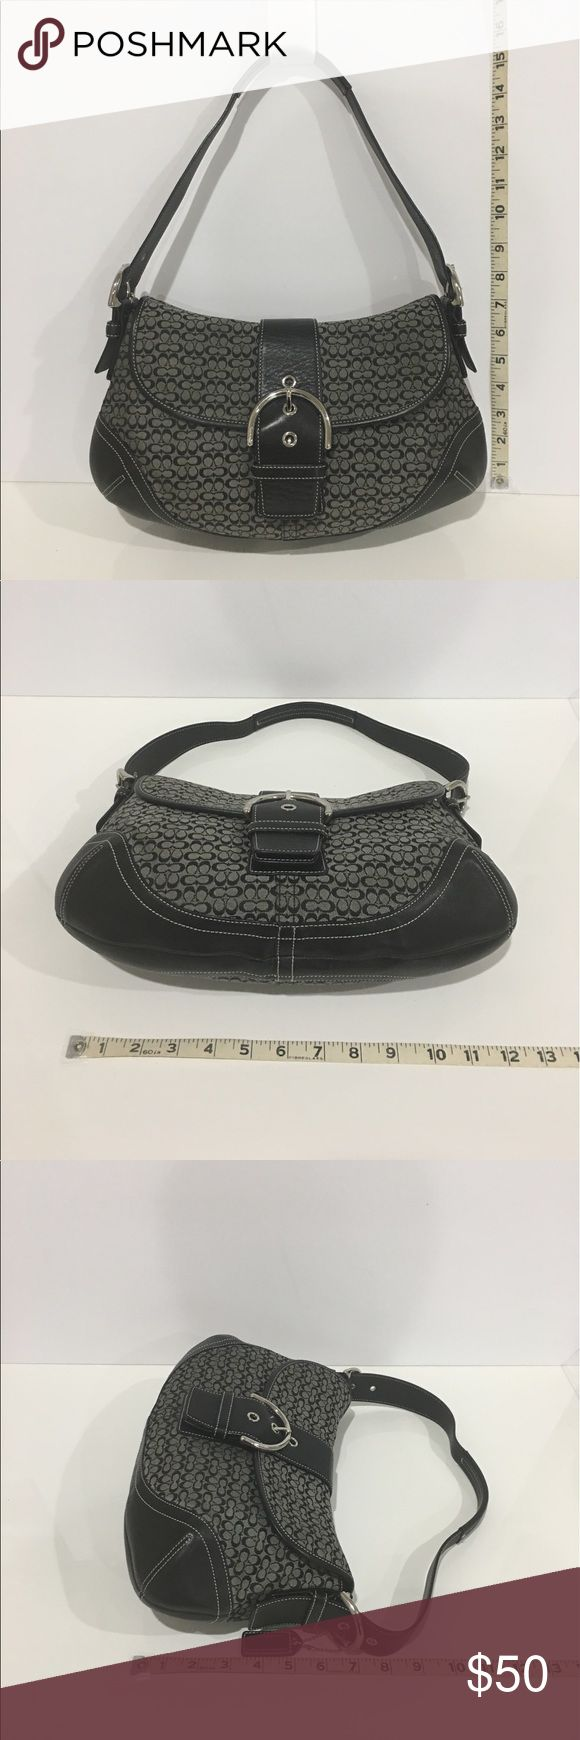 COACH Signature Black and Gray Shoulder Bag 💥SUPER SALE - WAS $60💥USED COACH Signature Black and Gray Shoulder Bag.  Body is COACH gray fabric with a black C design.  The bottom, handle, and accents are black leather with white stitching.  The hardware is silver.  The is one large magnetic snap pocket across the back of the bag.  Inside, there are two sections.  The front section has a zipper pocket on the back portion and two reach in pockets on the front portion.  Please see the pictures…